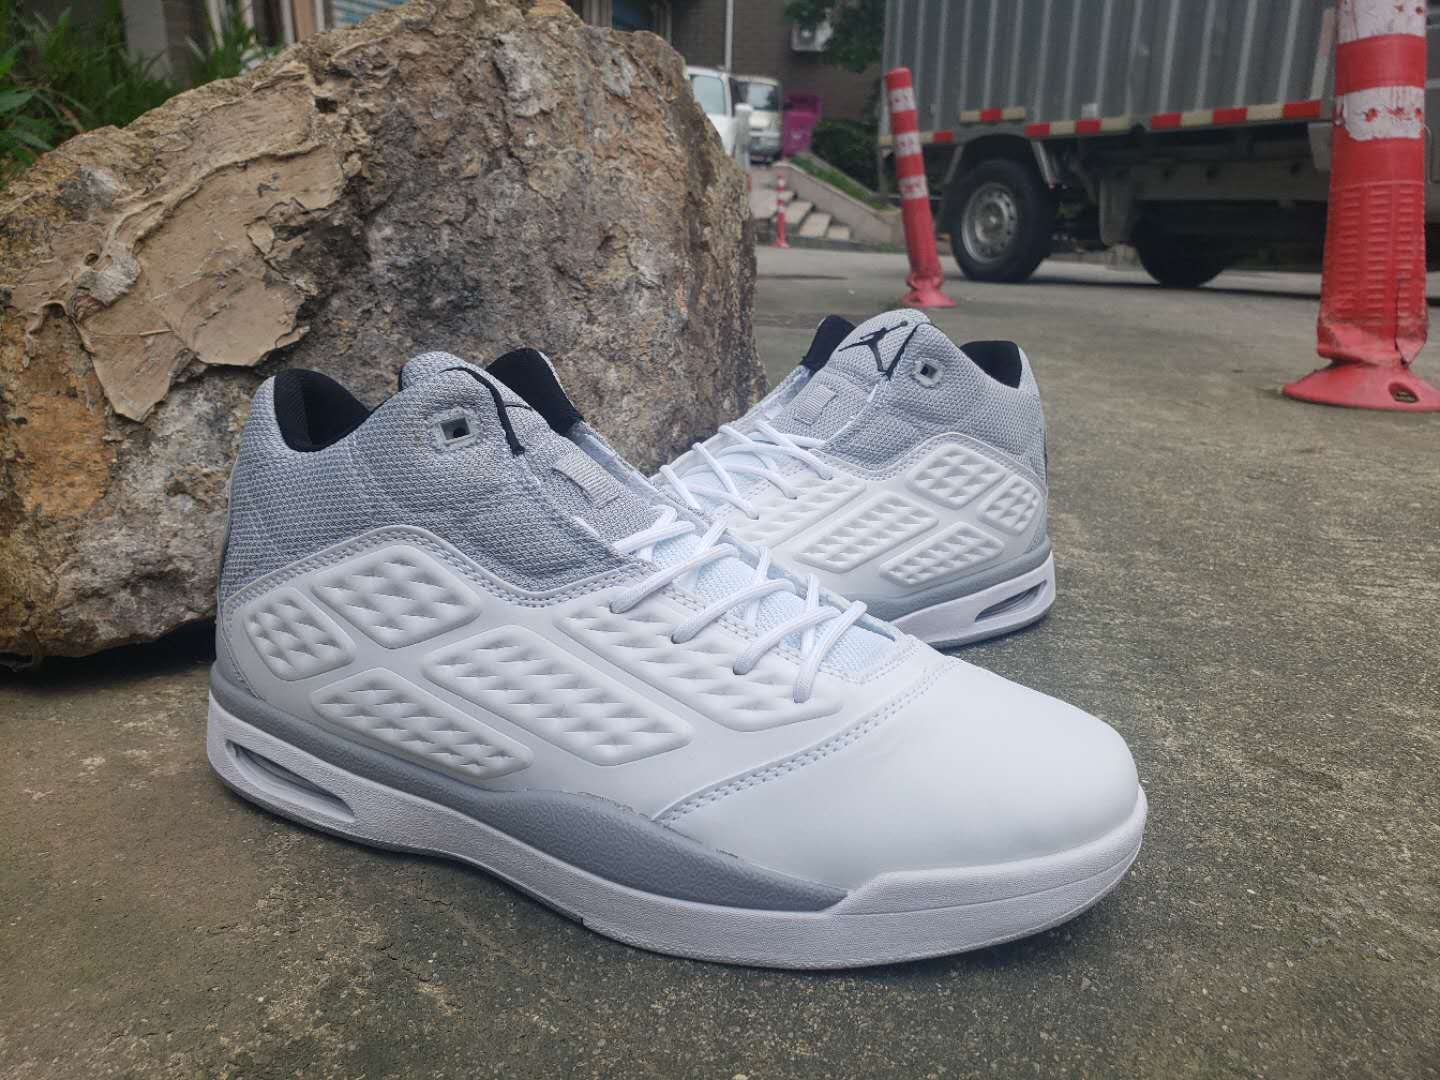 Jordan 2019 New School White Grey Shoes